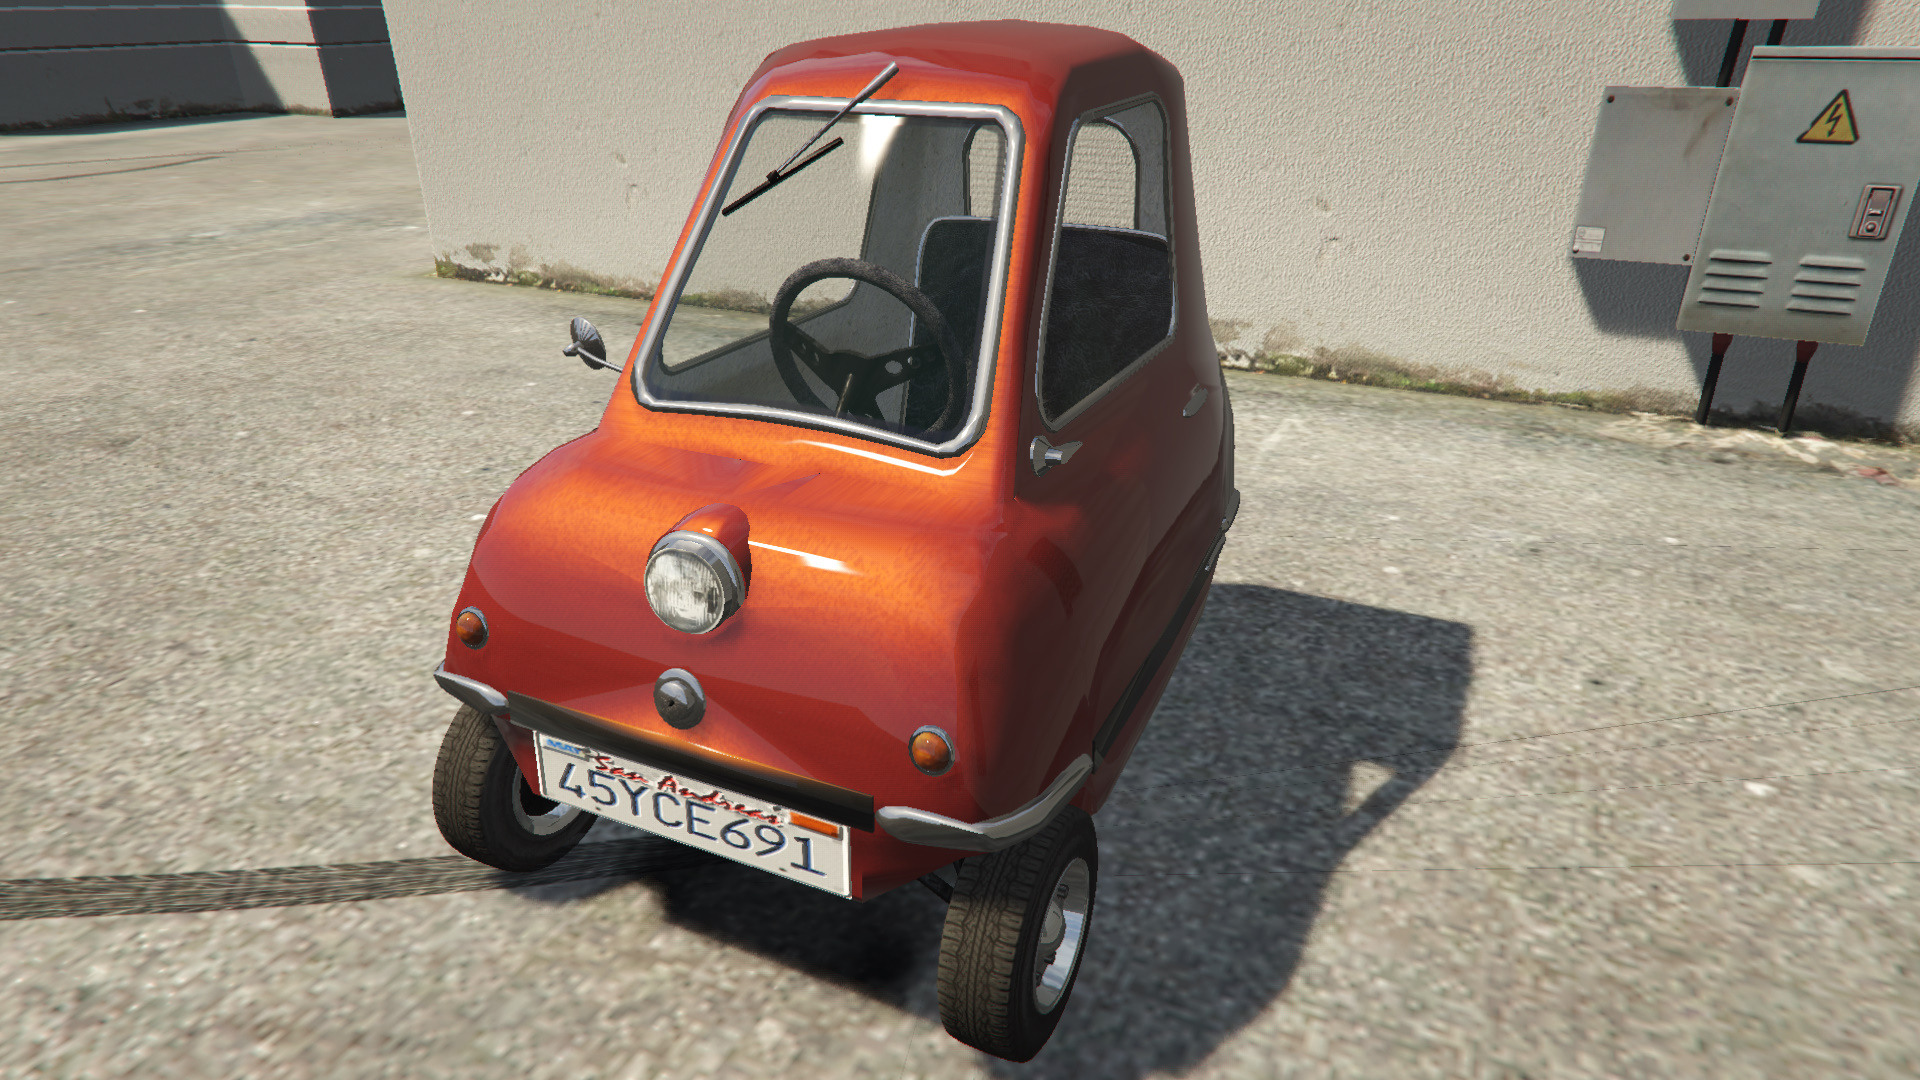 Gta V Where To Buy Small Car